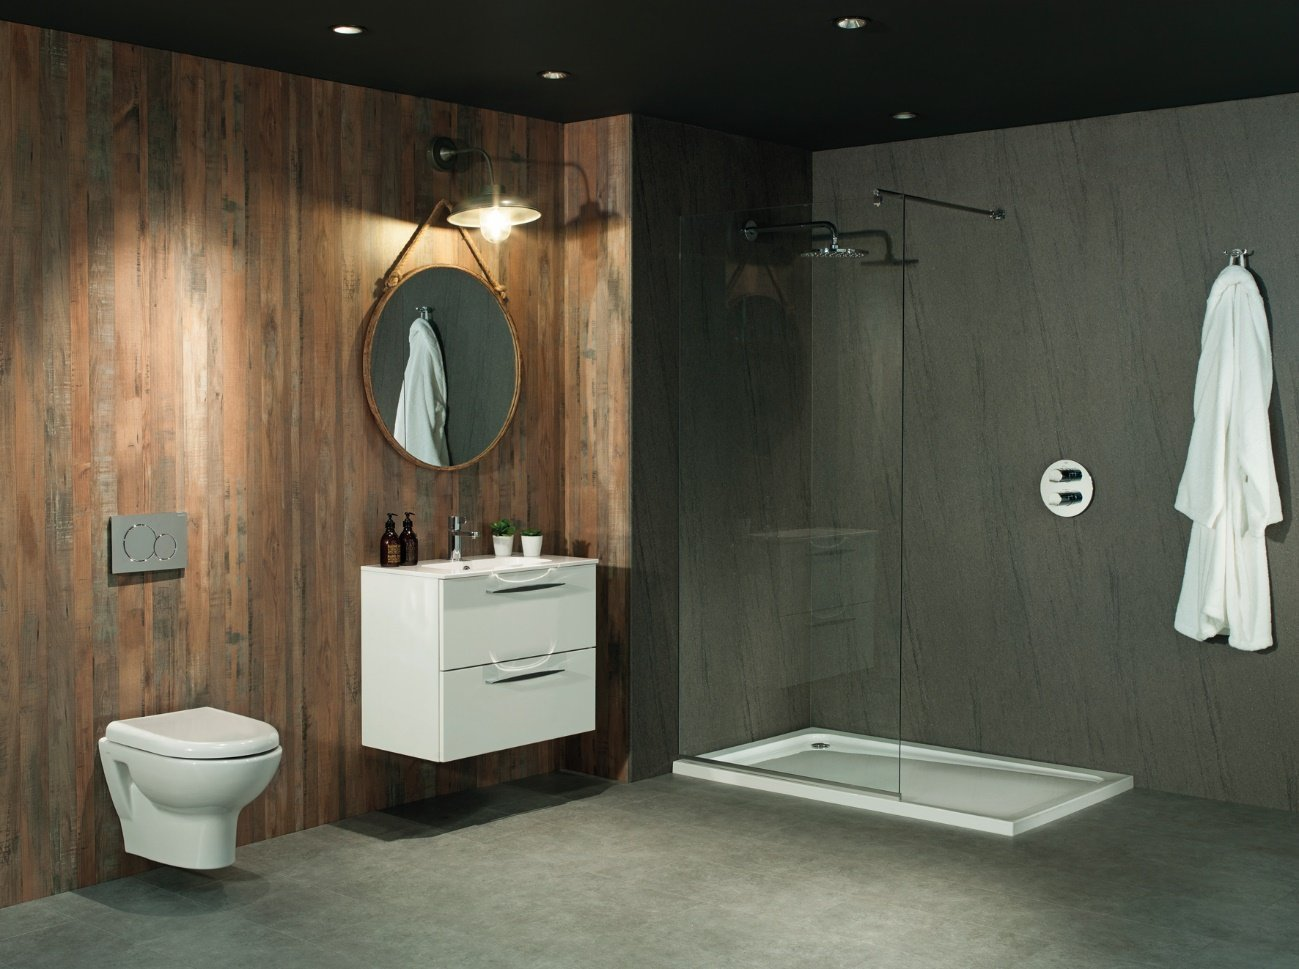 Bushboard Set To Change Perception Of Bathroom Wall